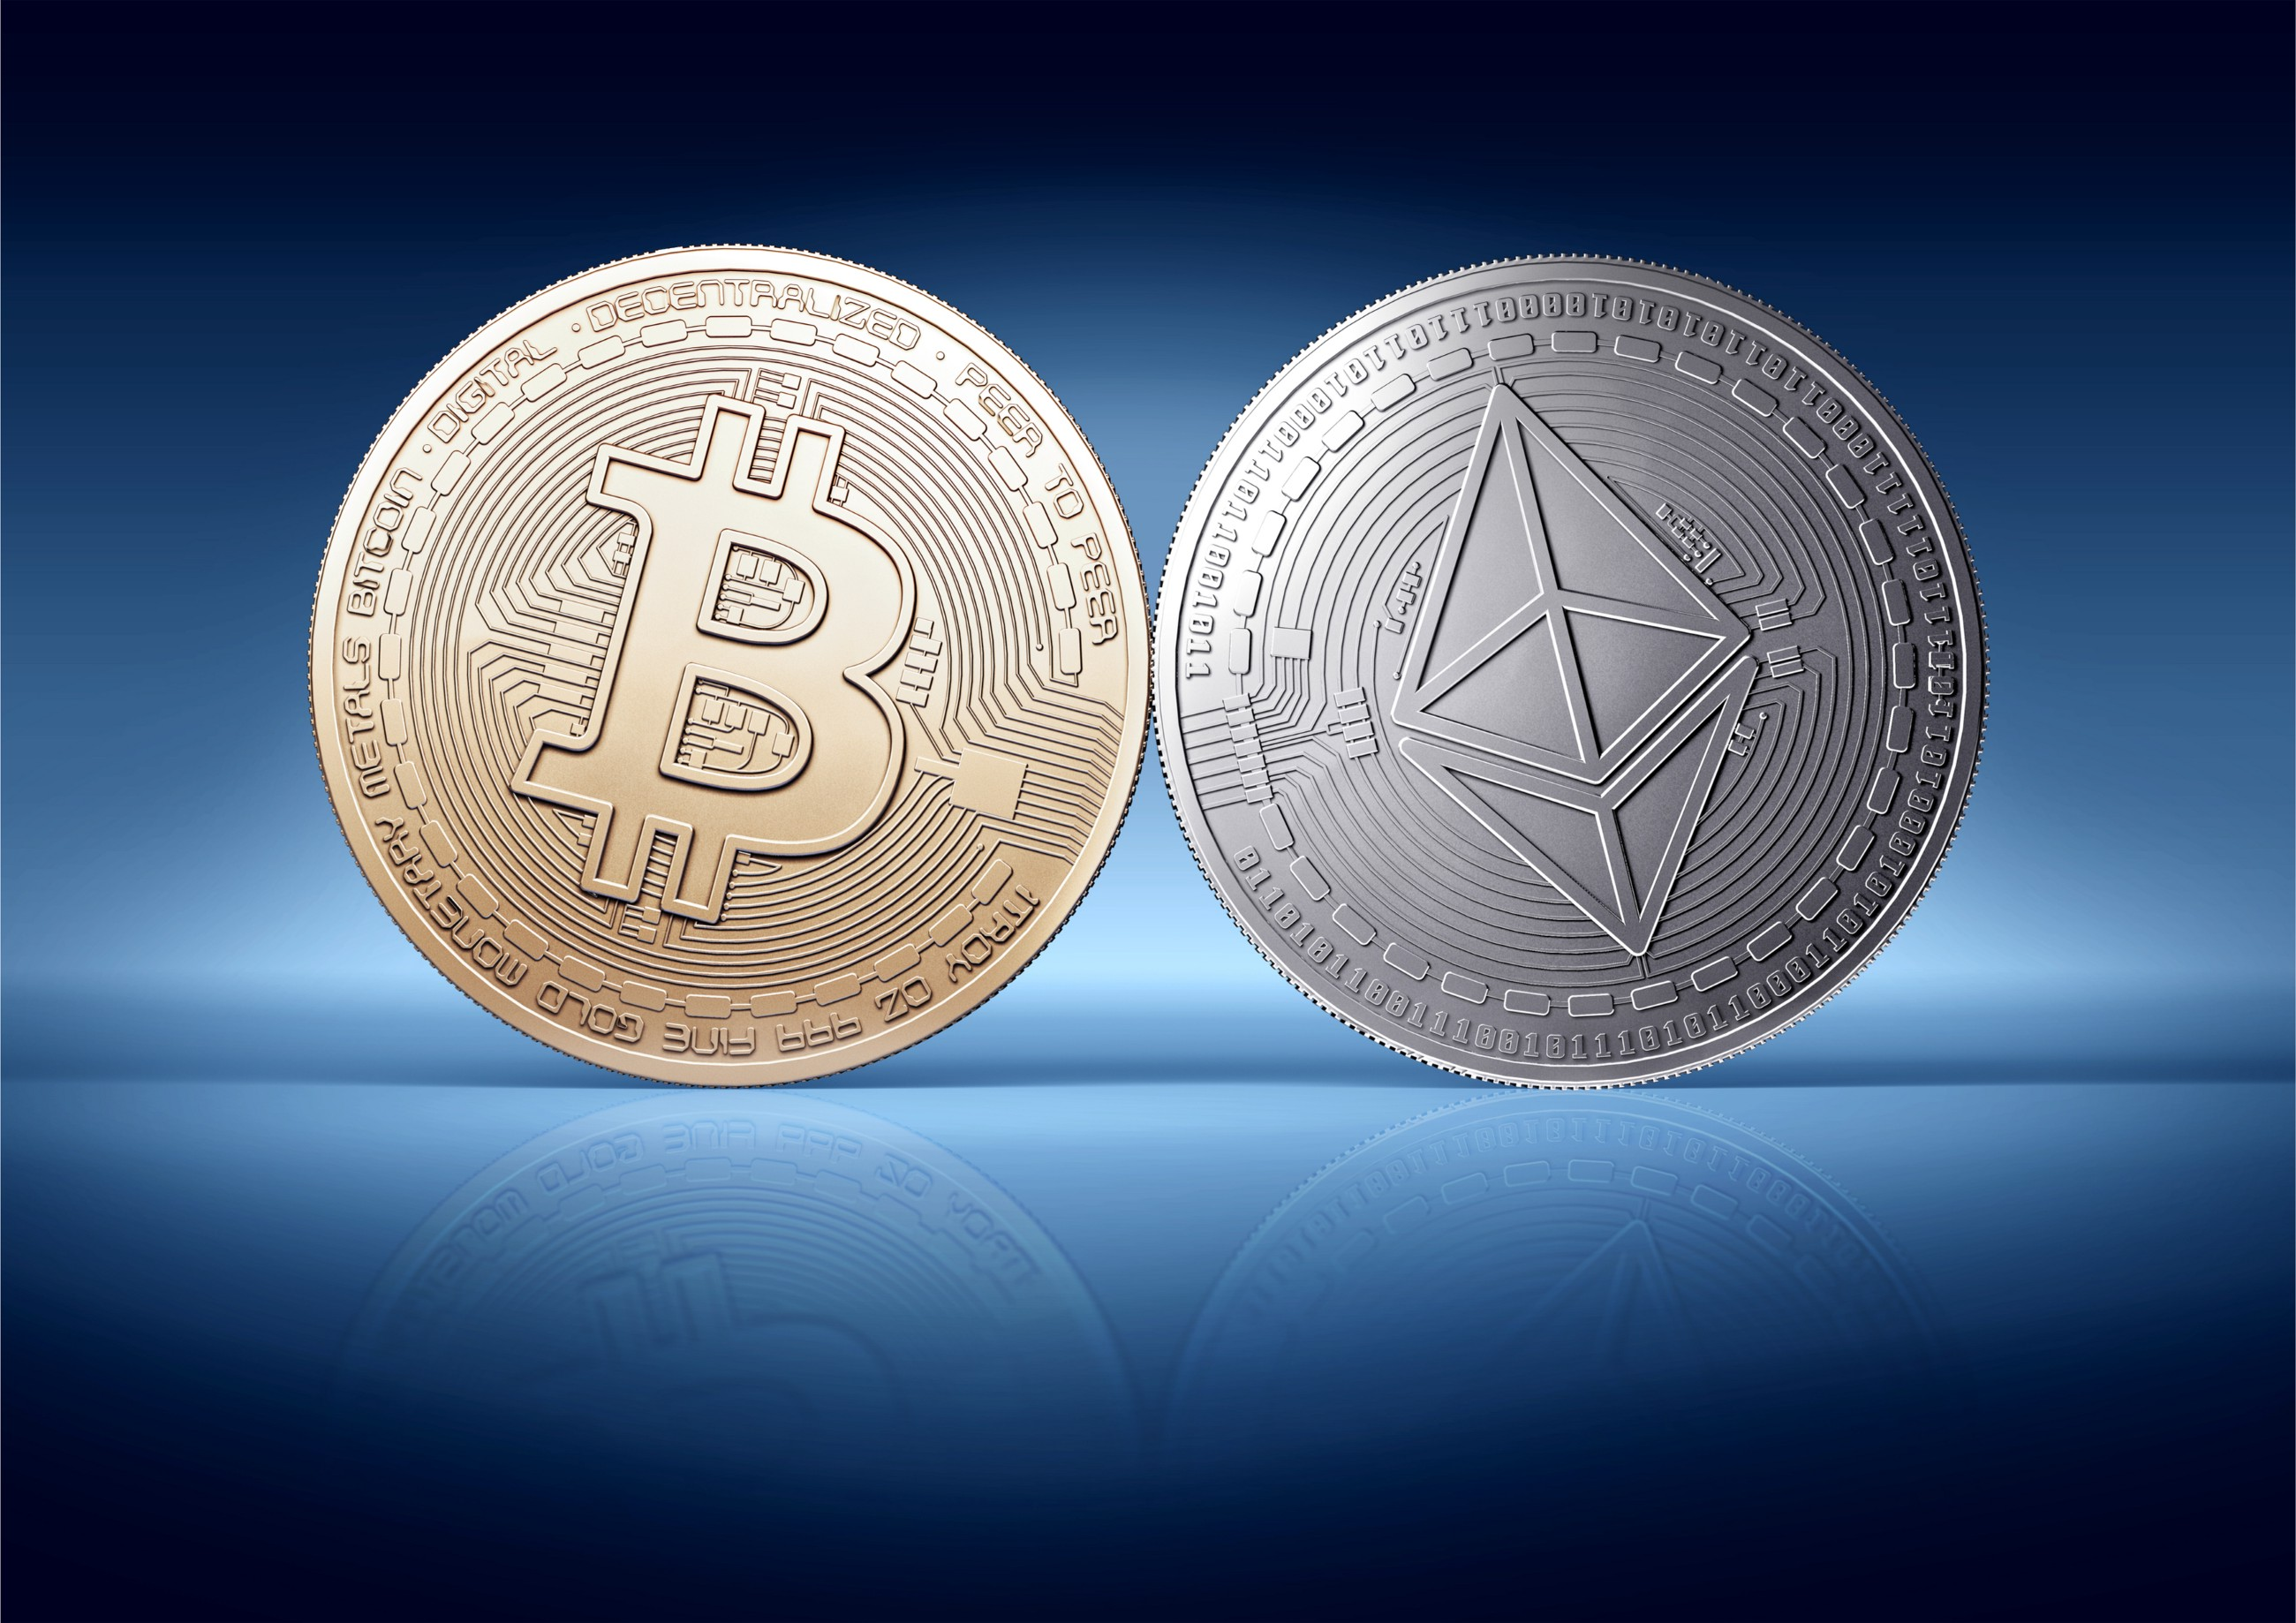 /eight-simple-rules-for-protecting-your-cryptocurrency-5cdddc9f674d feature image